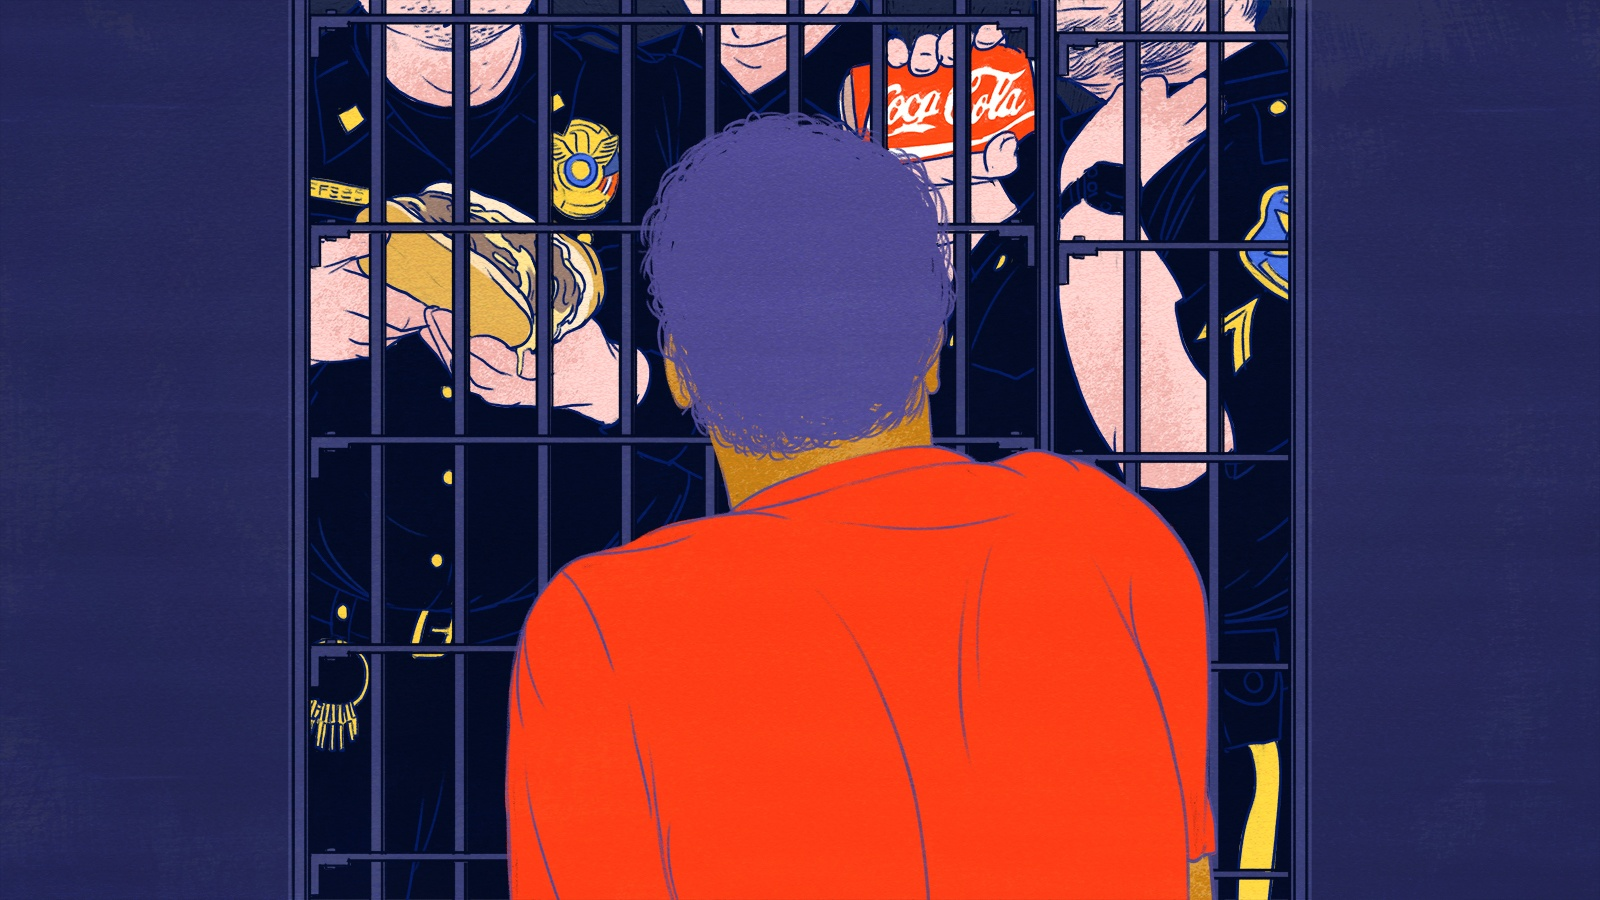 Hunger strike illustration: detainee behind bars mocked by guards holding a Philly cheese steak and Coca-Cola. February 2021